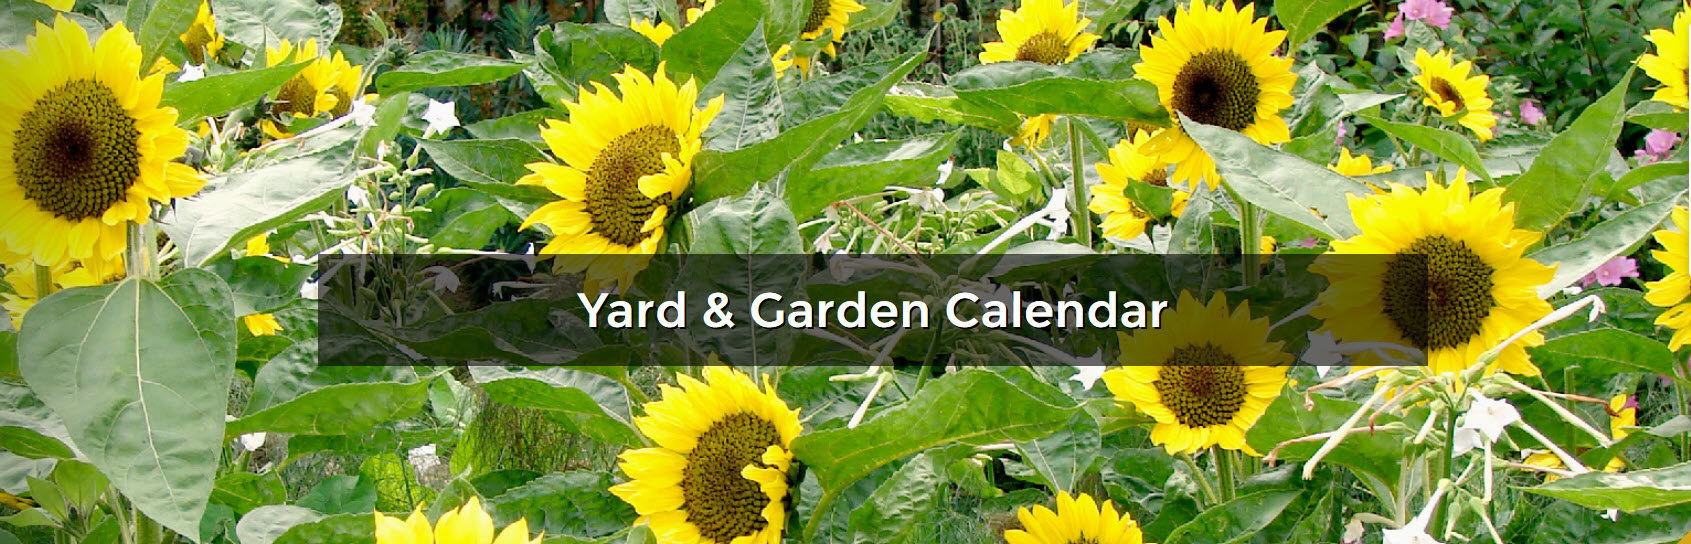 Yard and Garden Calendar banner displaying sunflowers